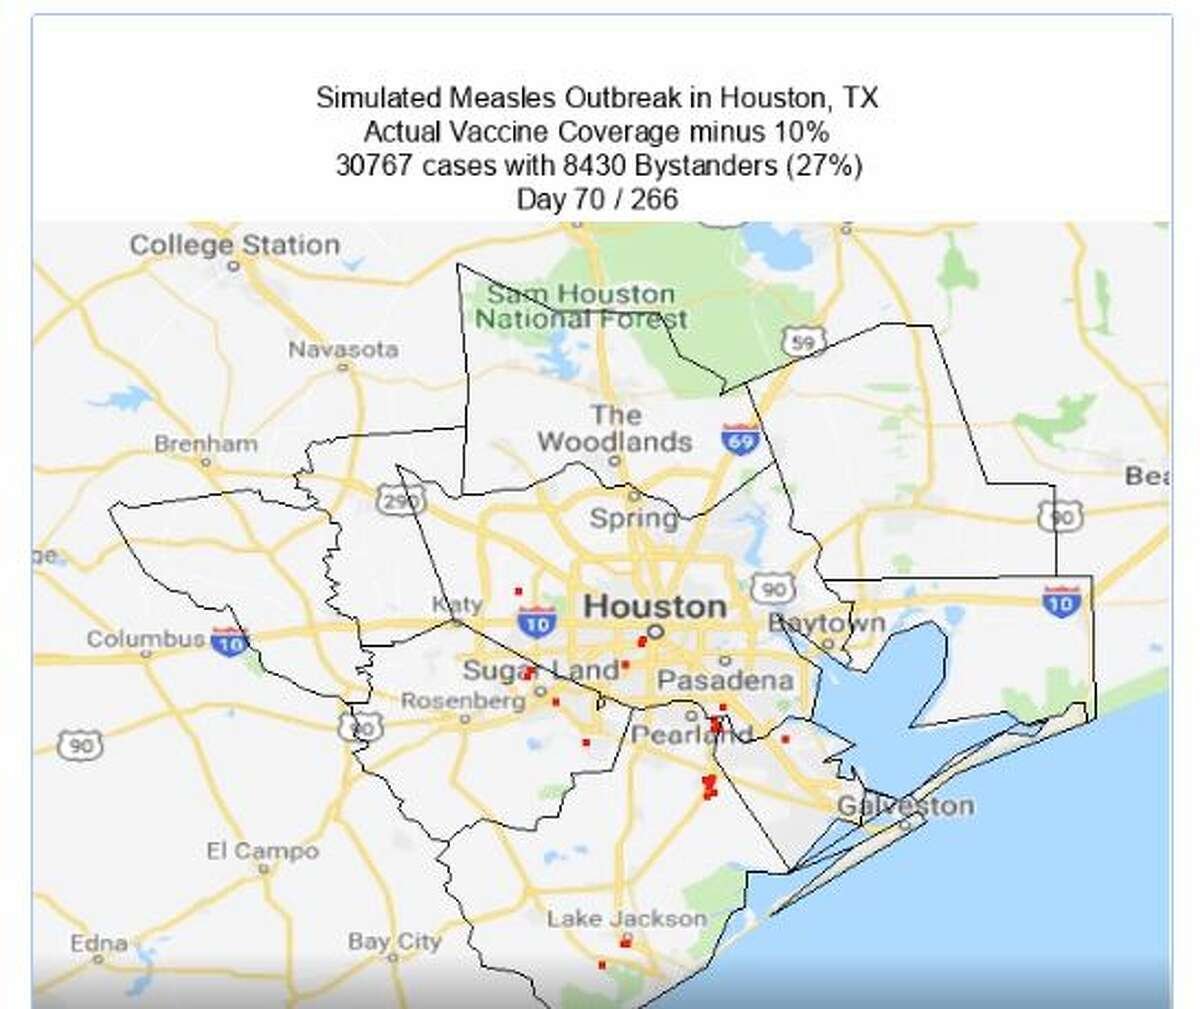 Simulated measles outbreak in HoustonDay 70/266Actual vaccine coverage minus 10%30,767 cases with 8,430 bystanders